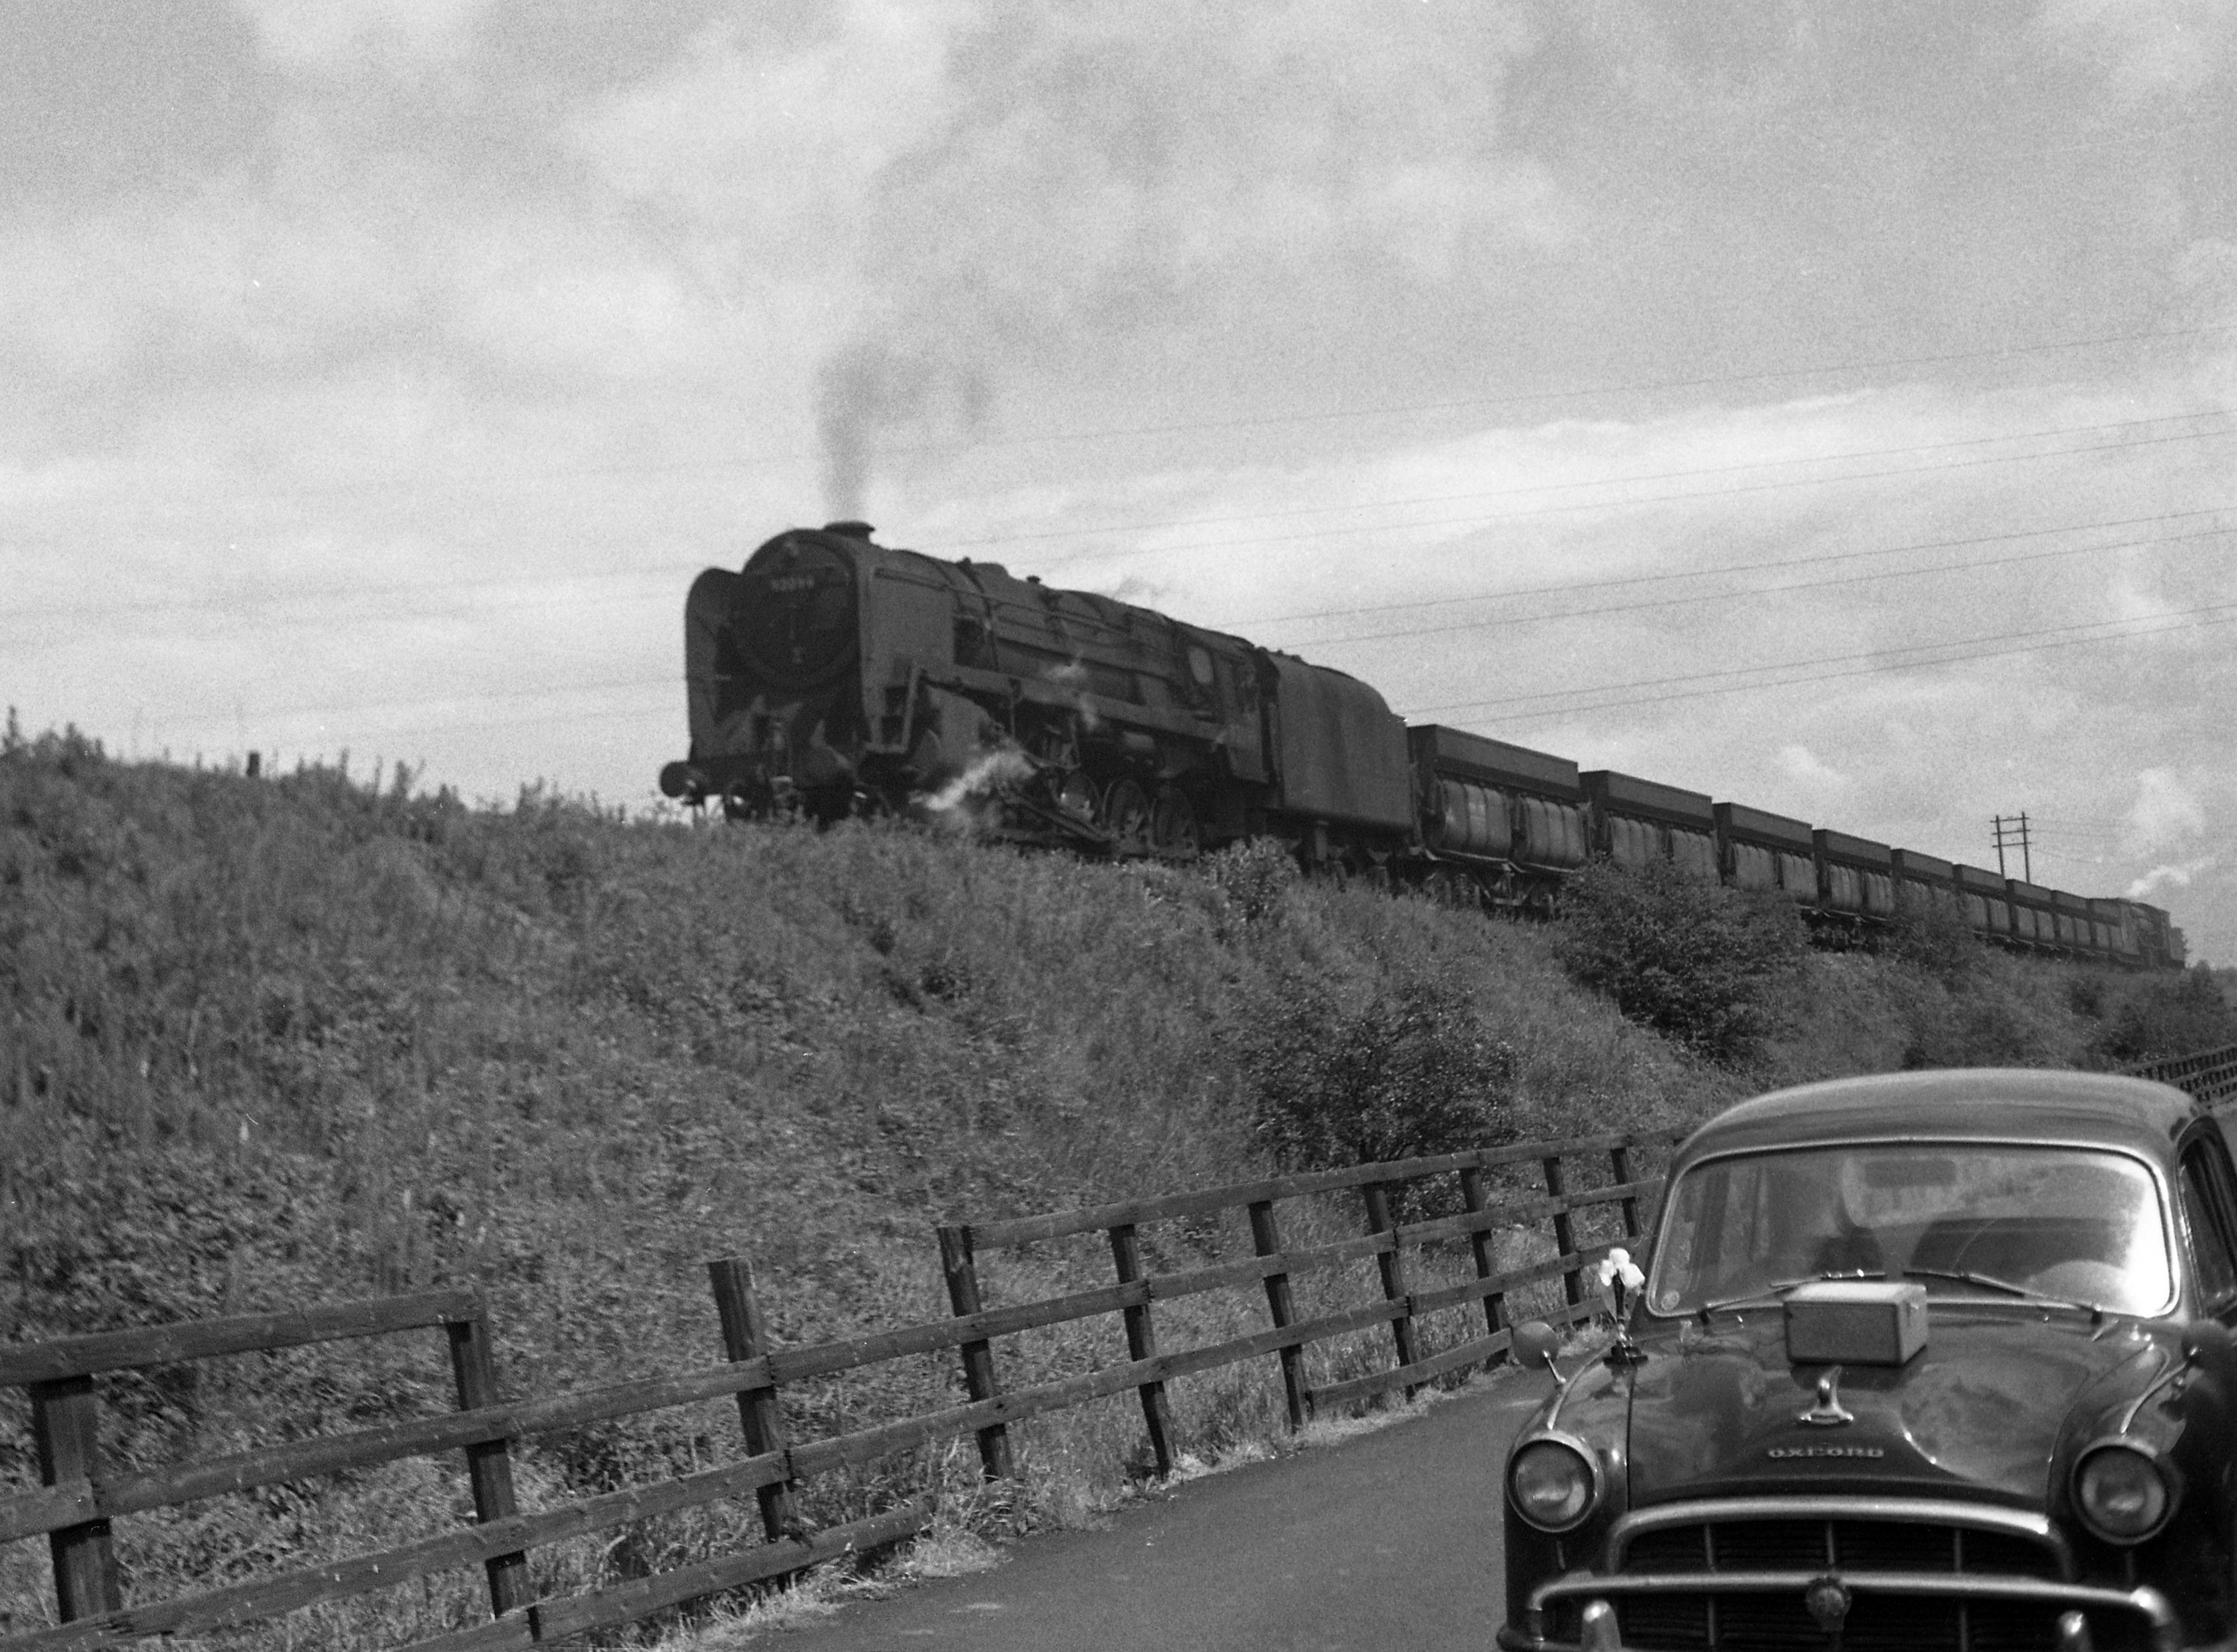 92063 pounds up the hill at Stanley with a loaded iron ore train in 1963. The train is being banked by a WD.